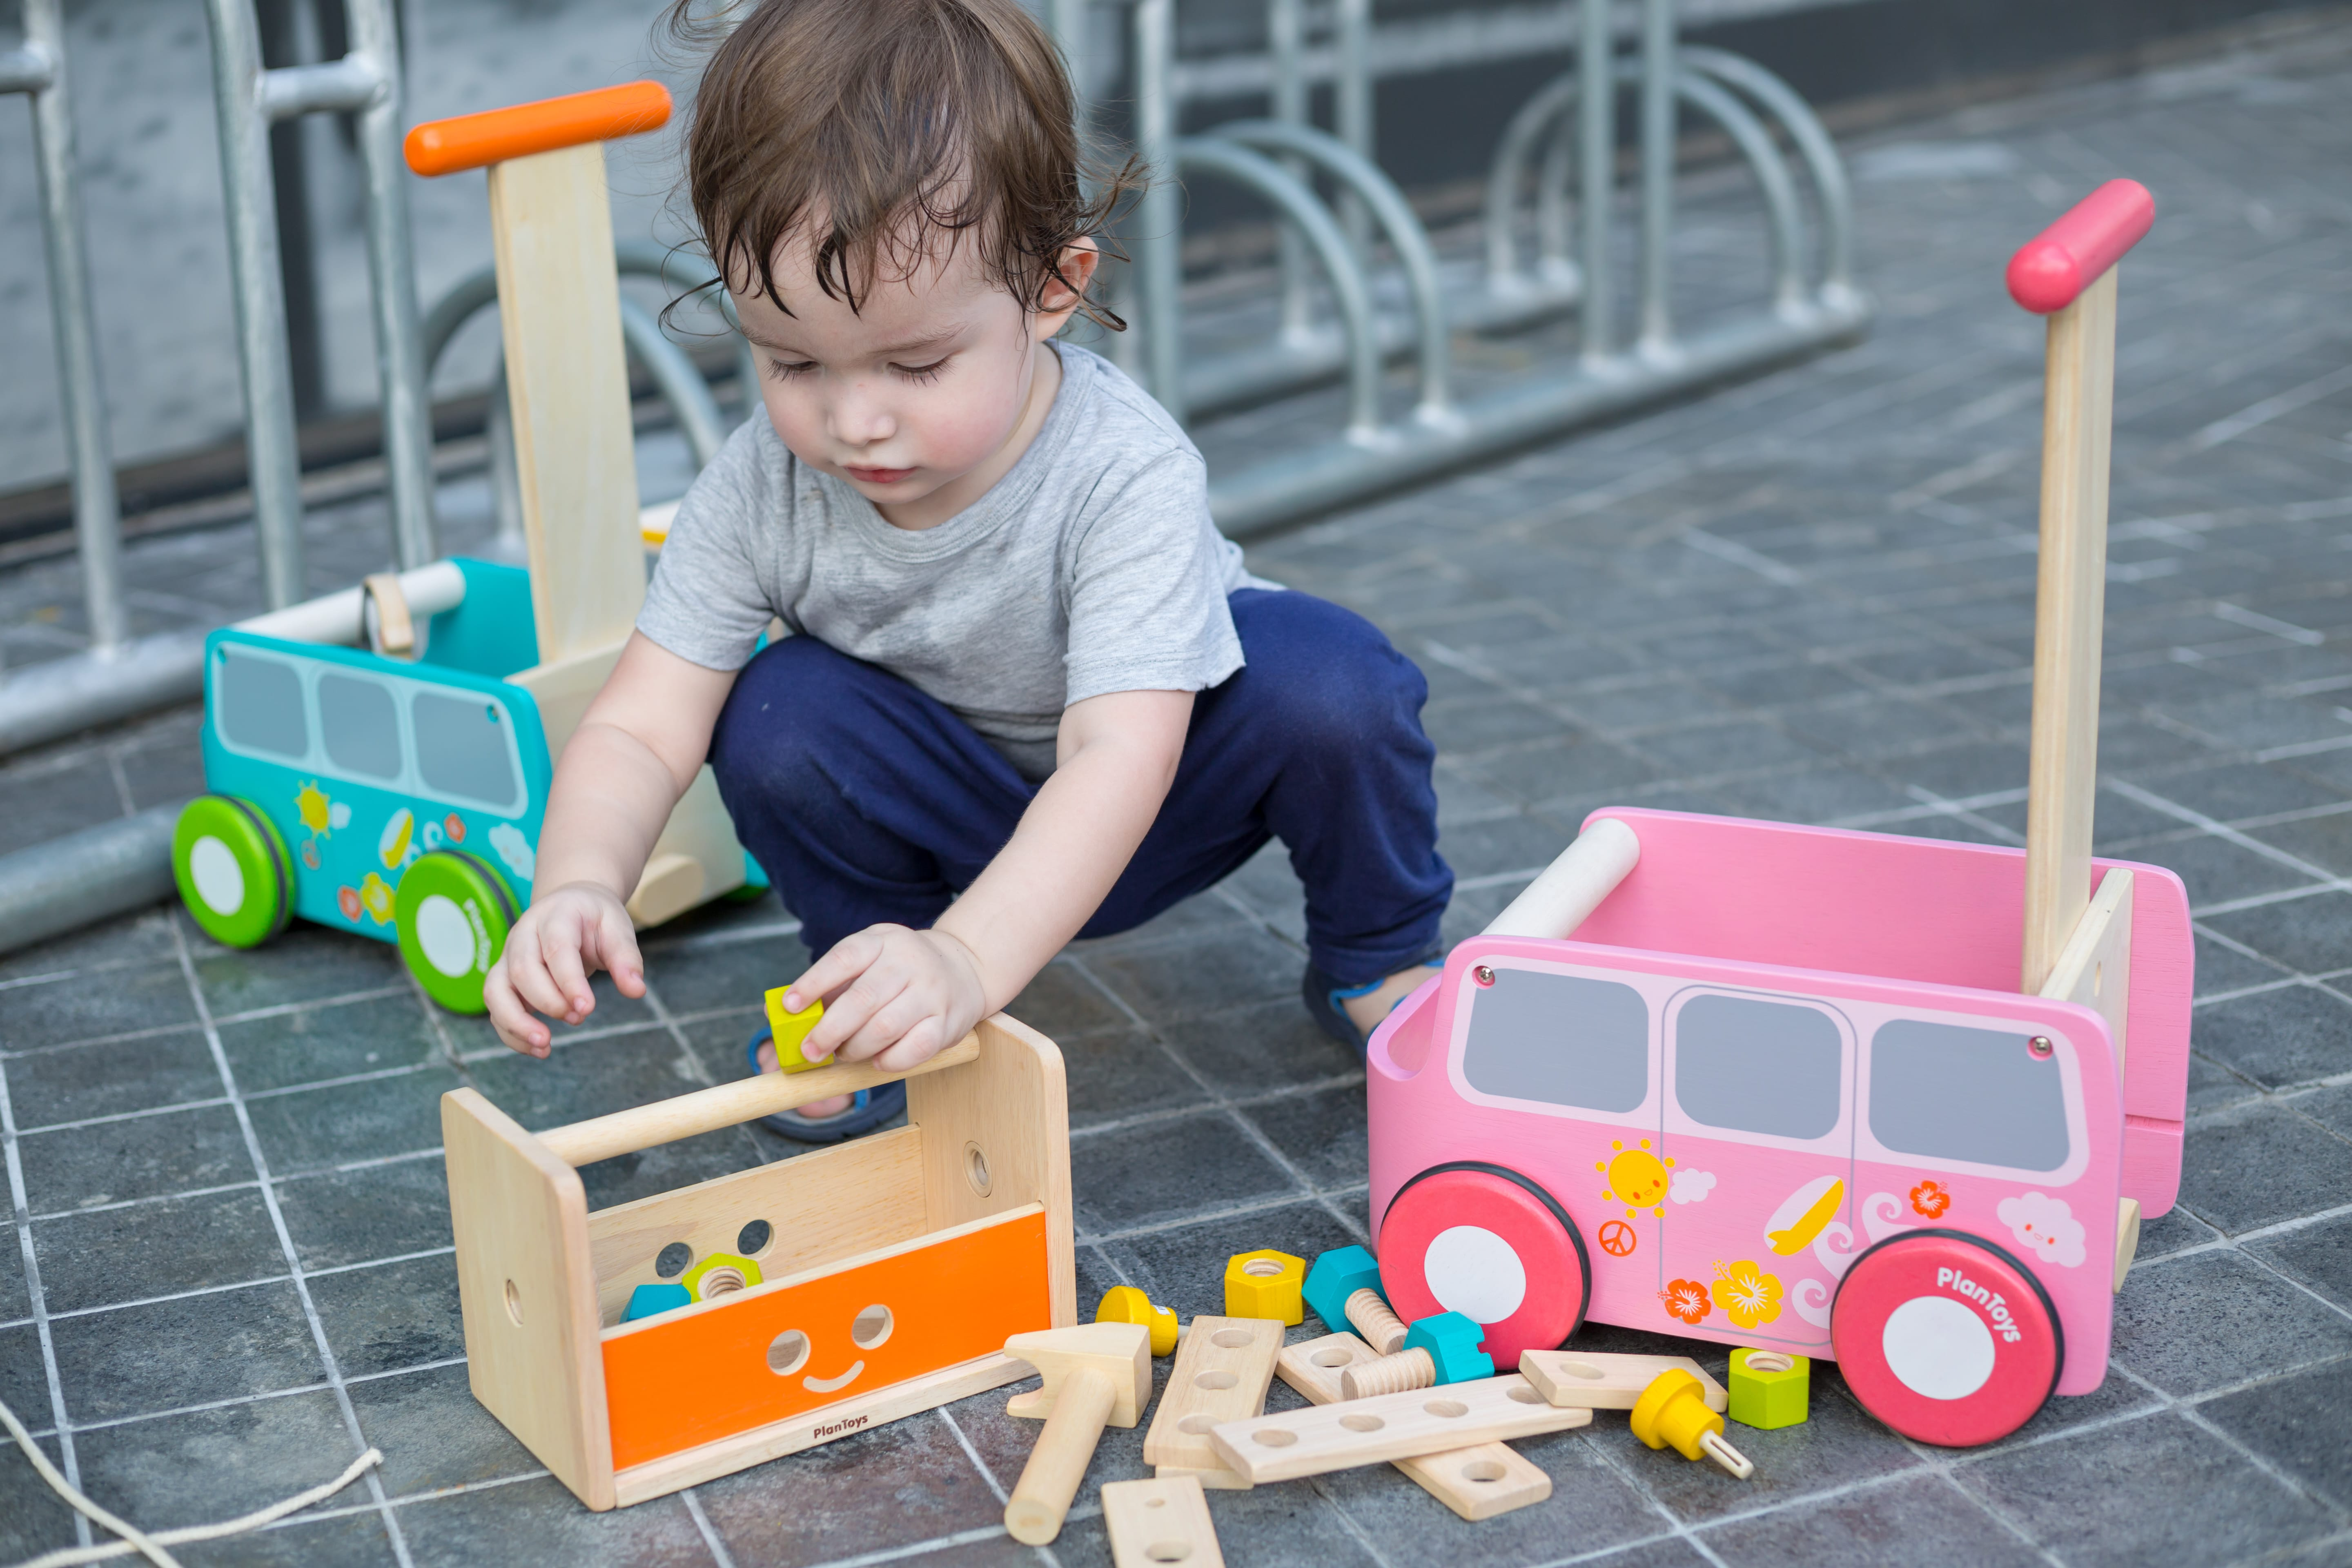 5540_PlanToys_ROBOT_TOOLBOX_Blocks_and_Construction_Fine_Motor_Coordination_Logical_Creative_3yrs_Wooden_toys_Education_toys_Safety_Toys_Non-toxic_4.jpg